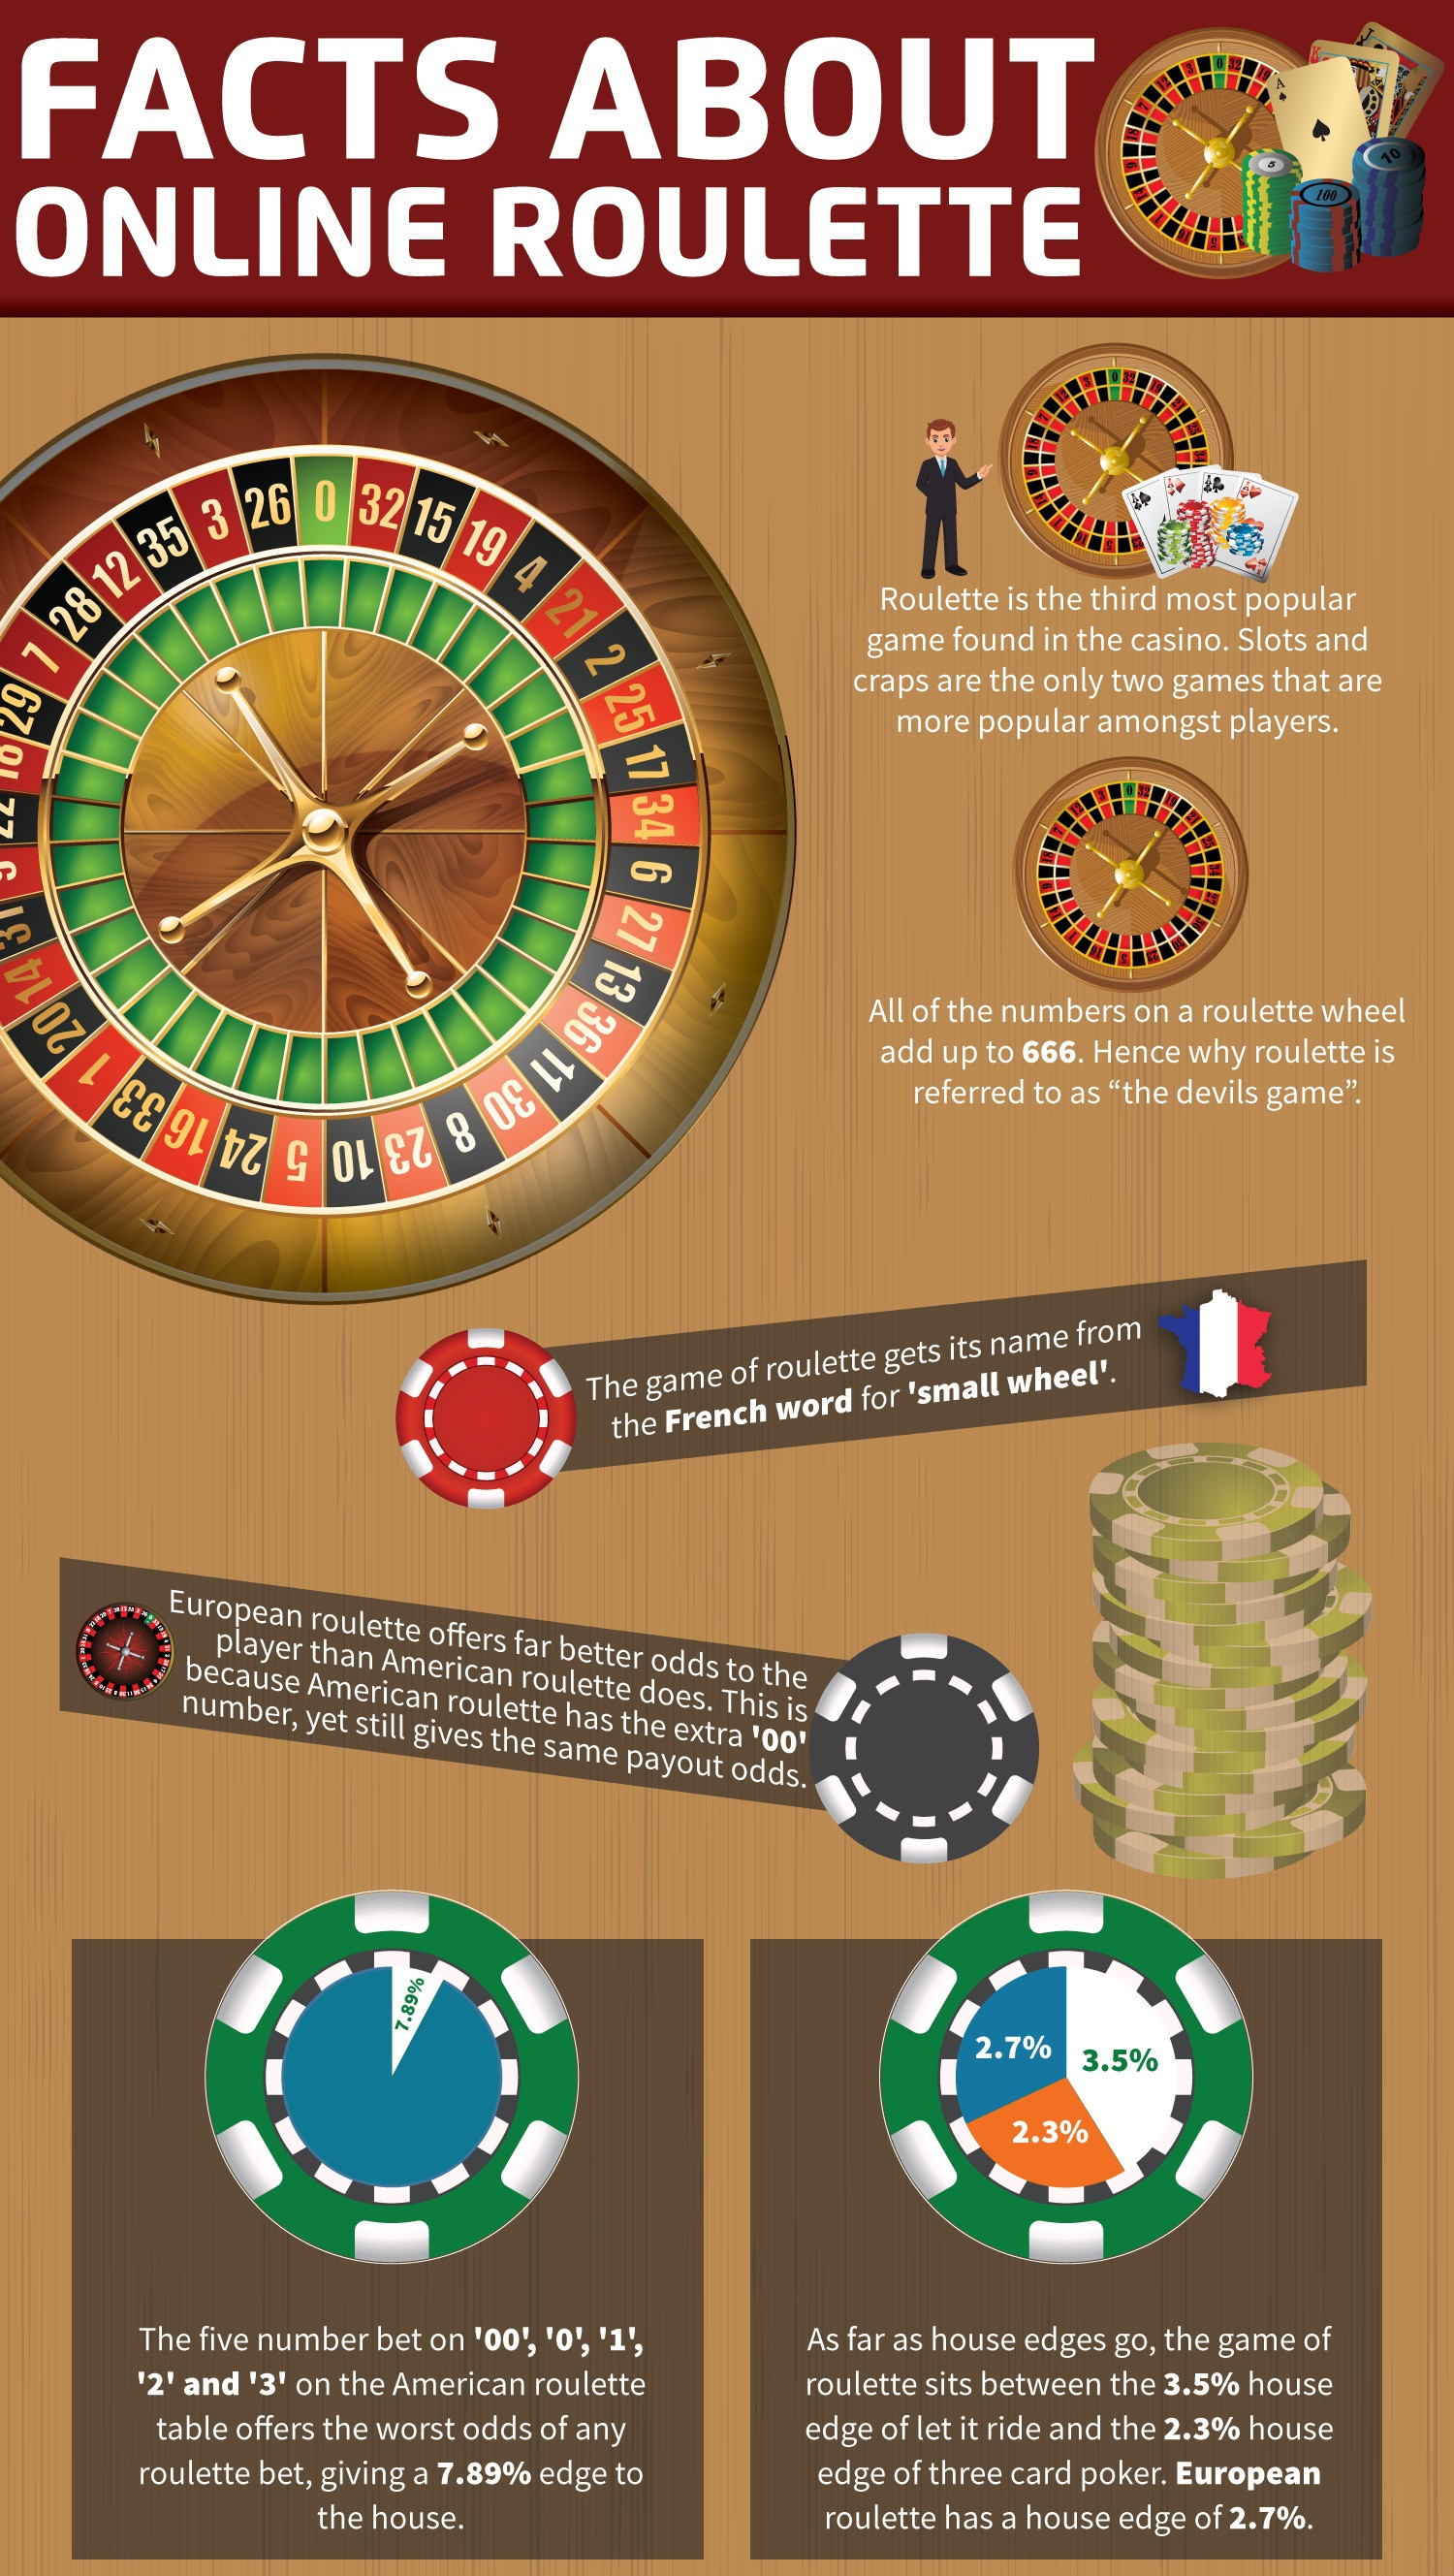 The most interesting facts about roulette Infographic